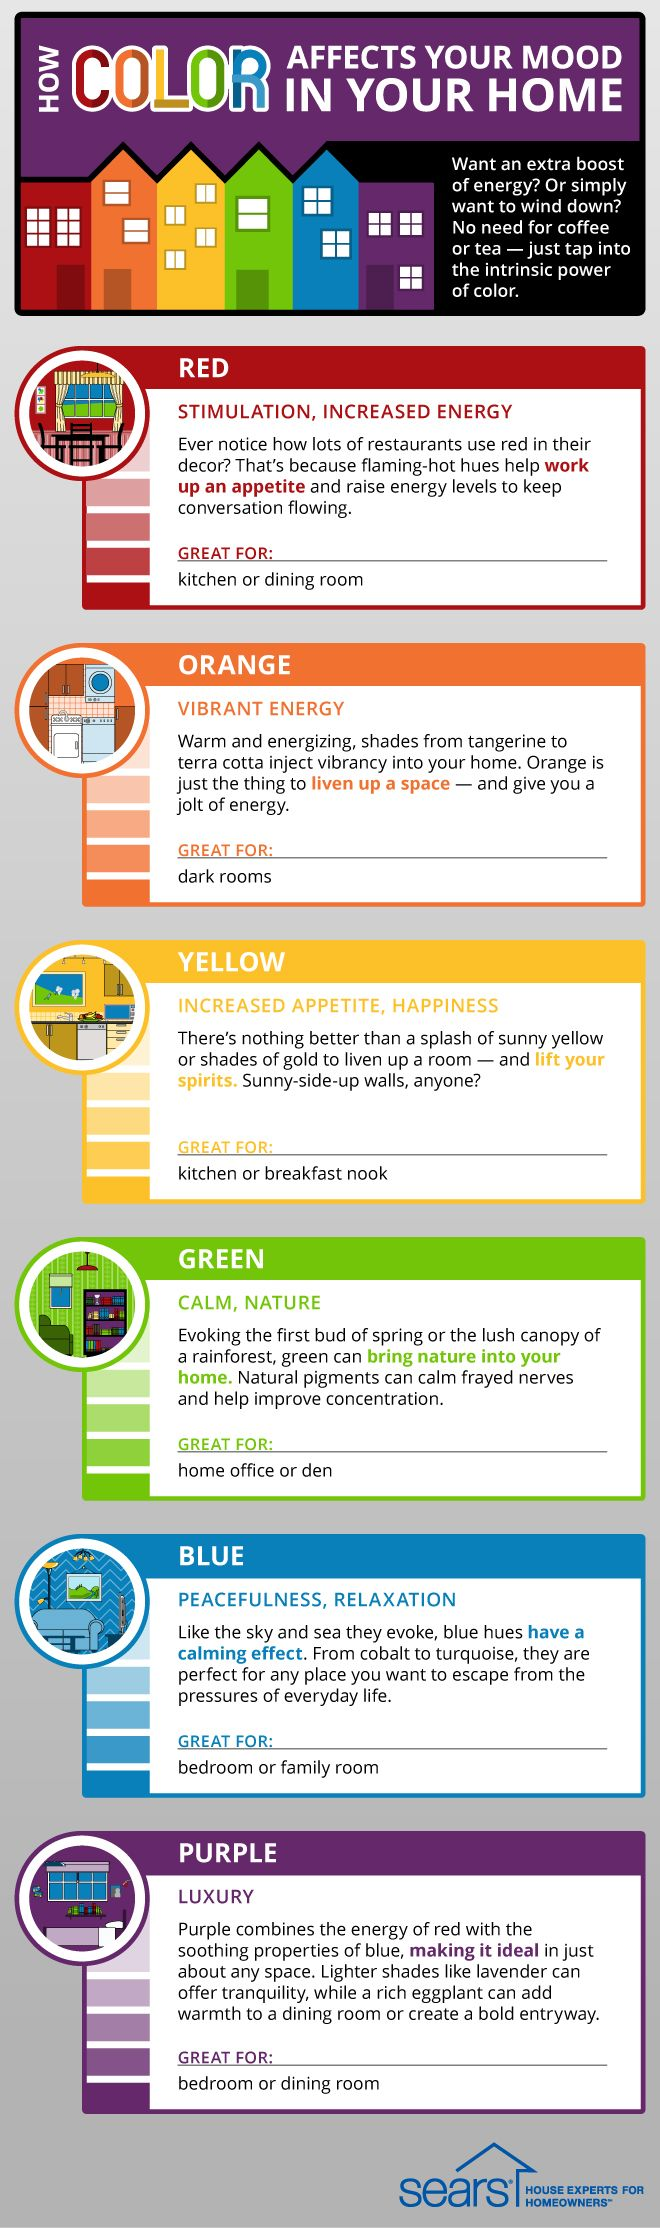 Psychology How Color Affects Your Mood In Your Home